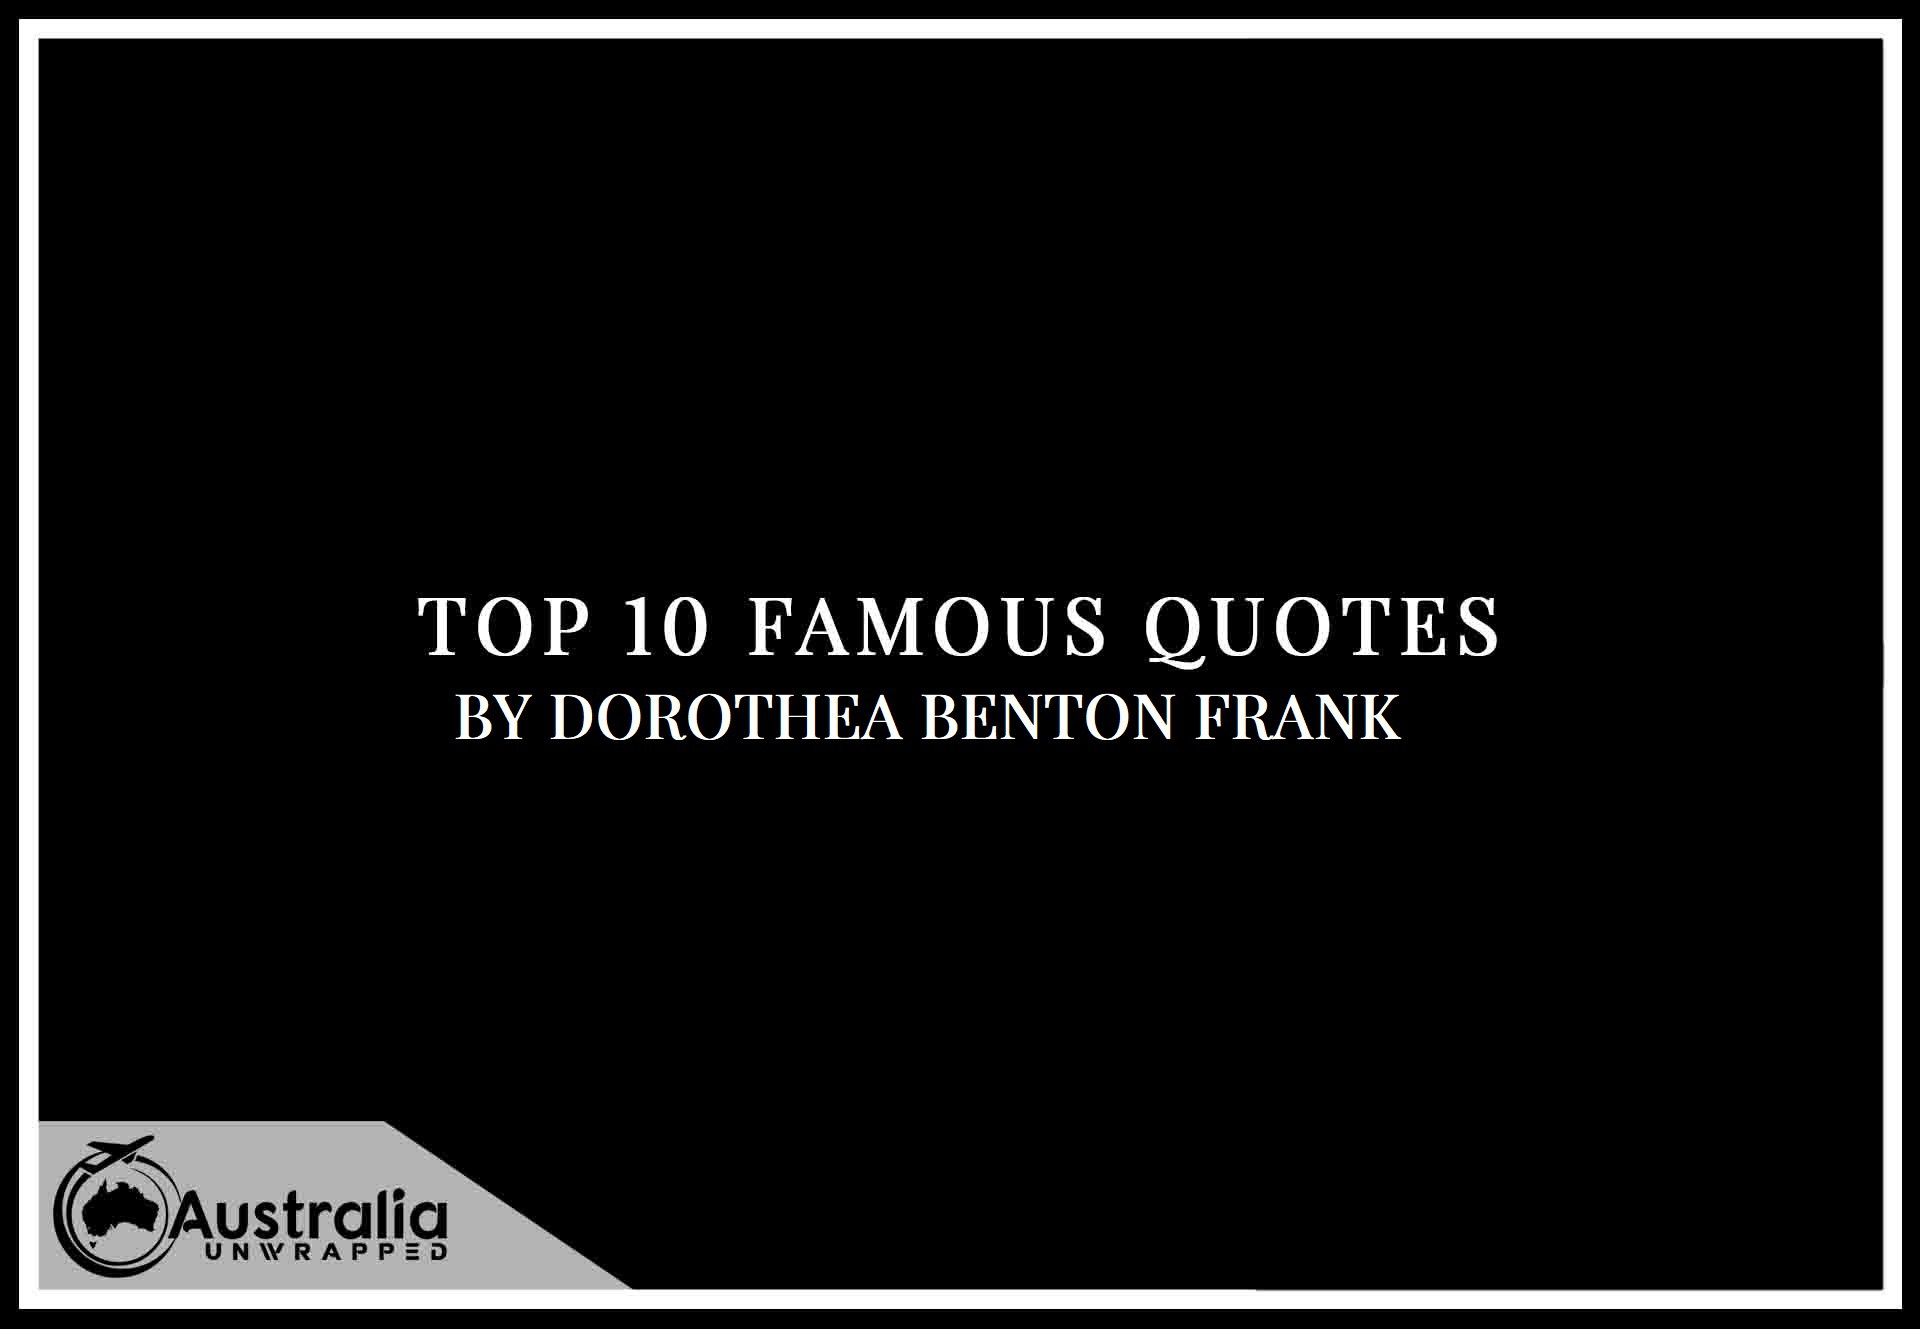 Top 10 Famous Quotes by Author Dorothea Benton Frank